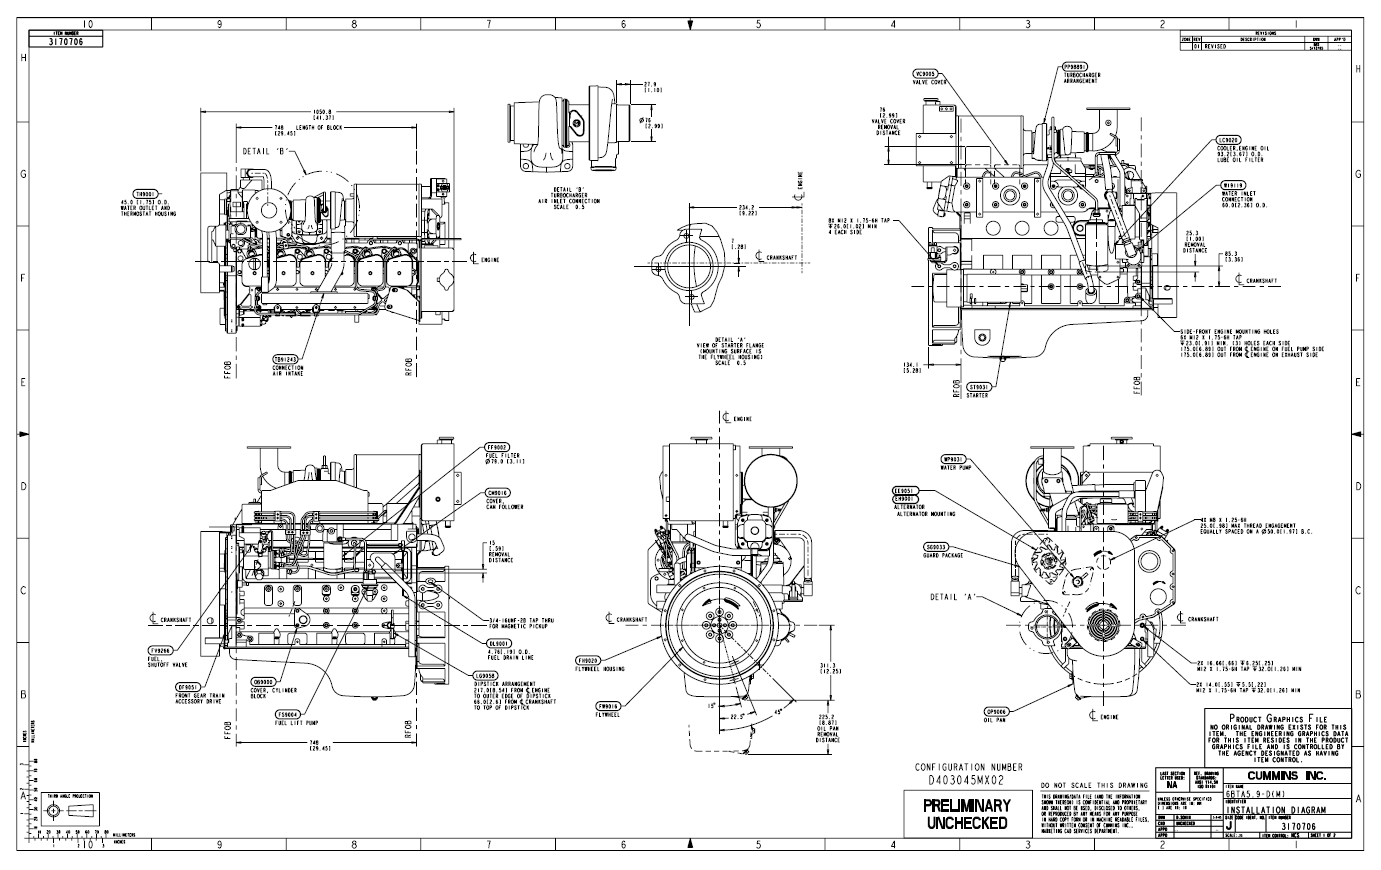 V8 Engine Diagram Basic 4x4 Diagram Wiring Diagram ~ ODICIS